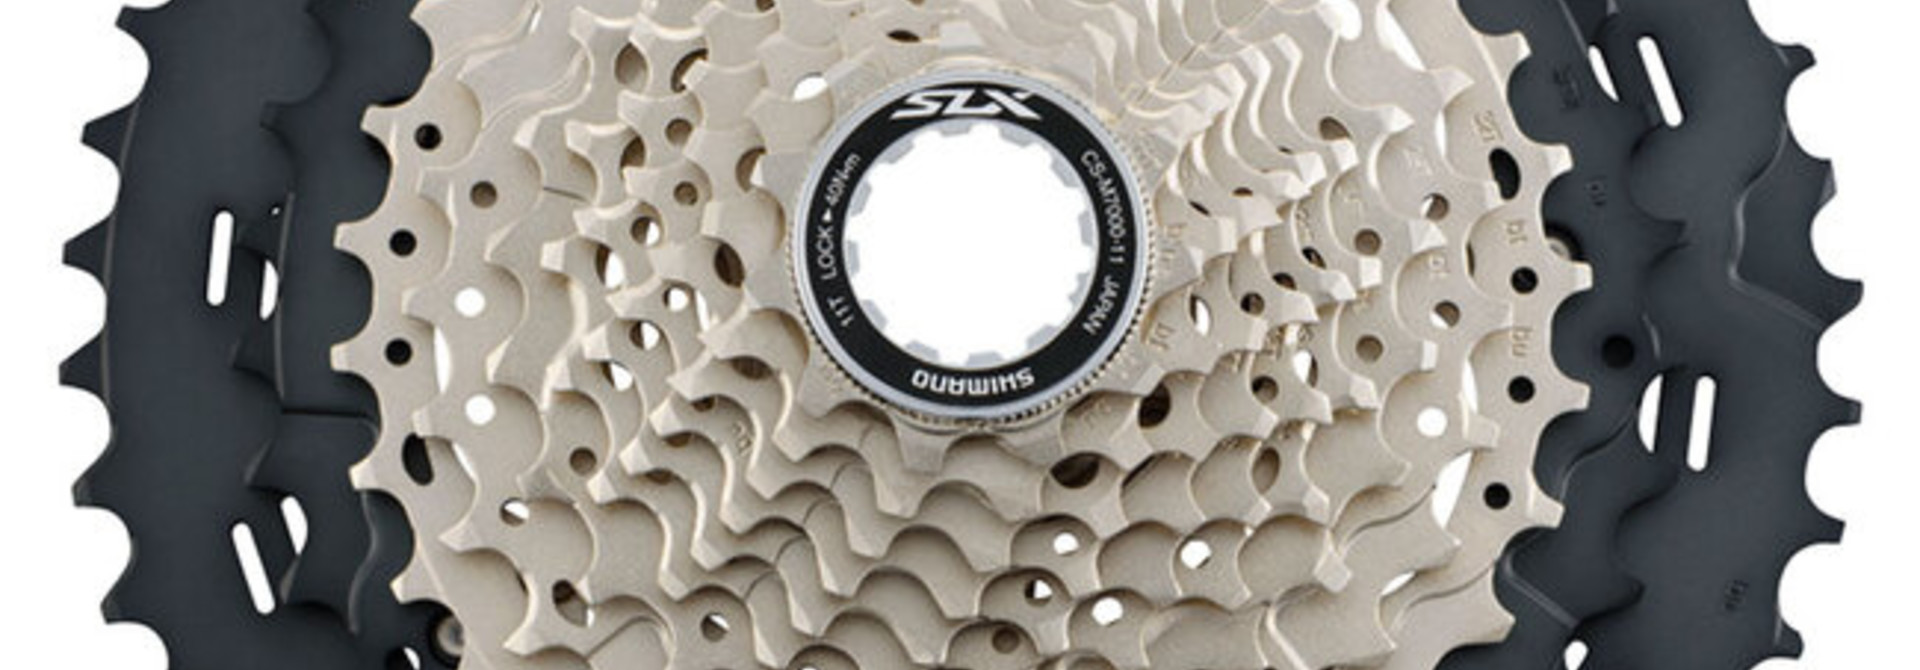 Shimano Cassette Sprocket, CS-M7000, SLX, 11-Speed, 11-13-15-17-19-21-24-28-32-37-46T, IND.PACK